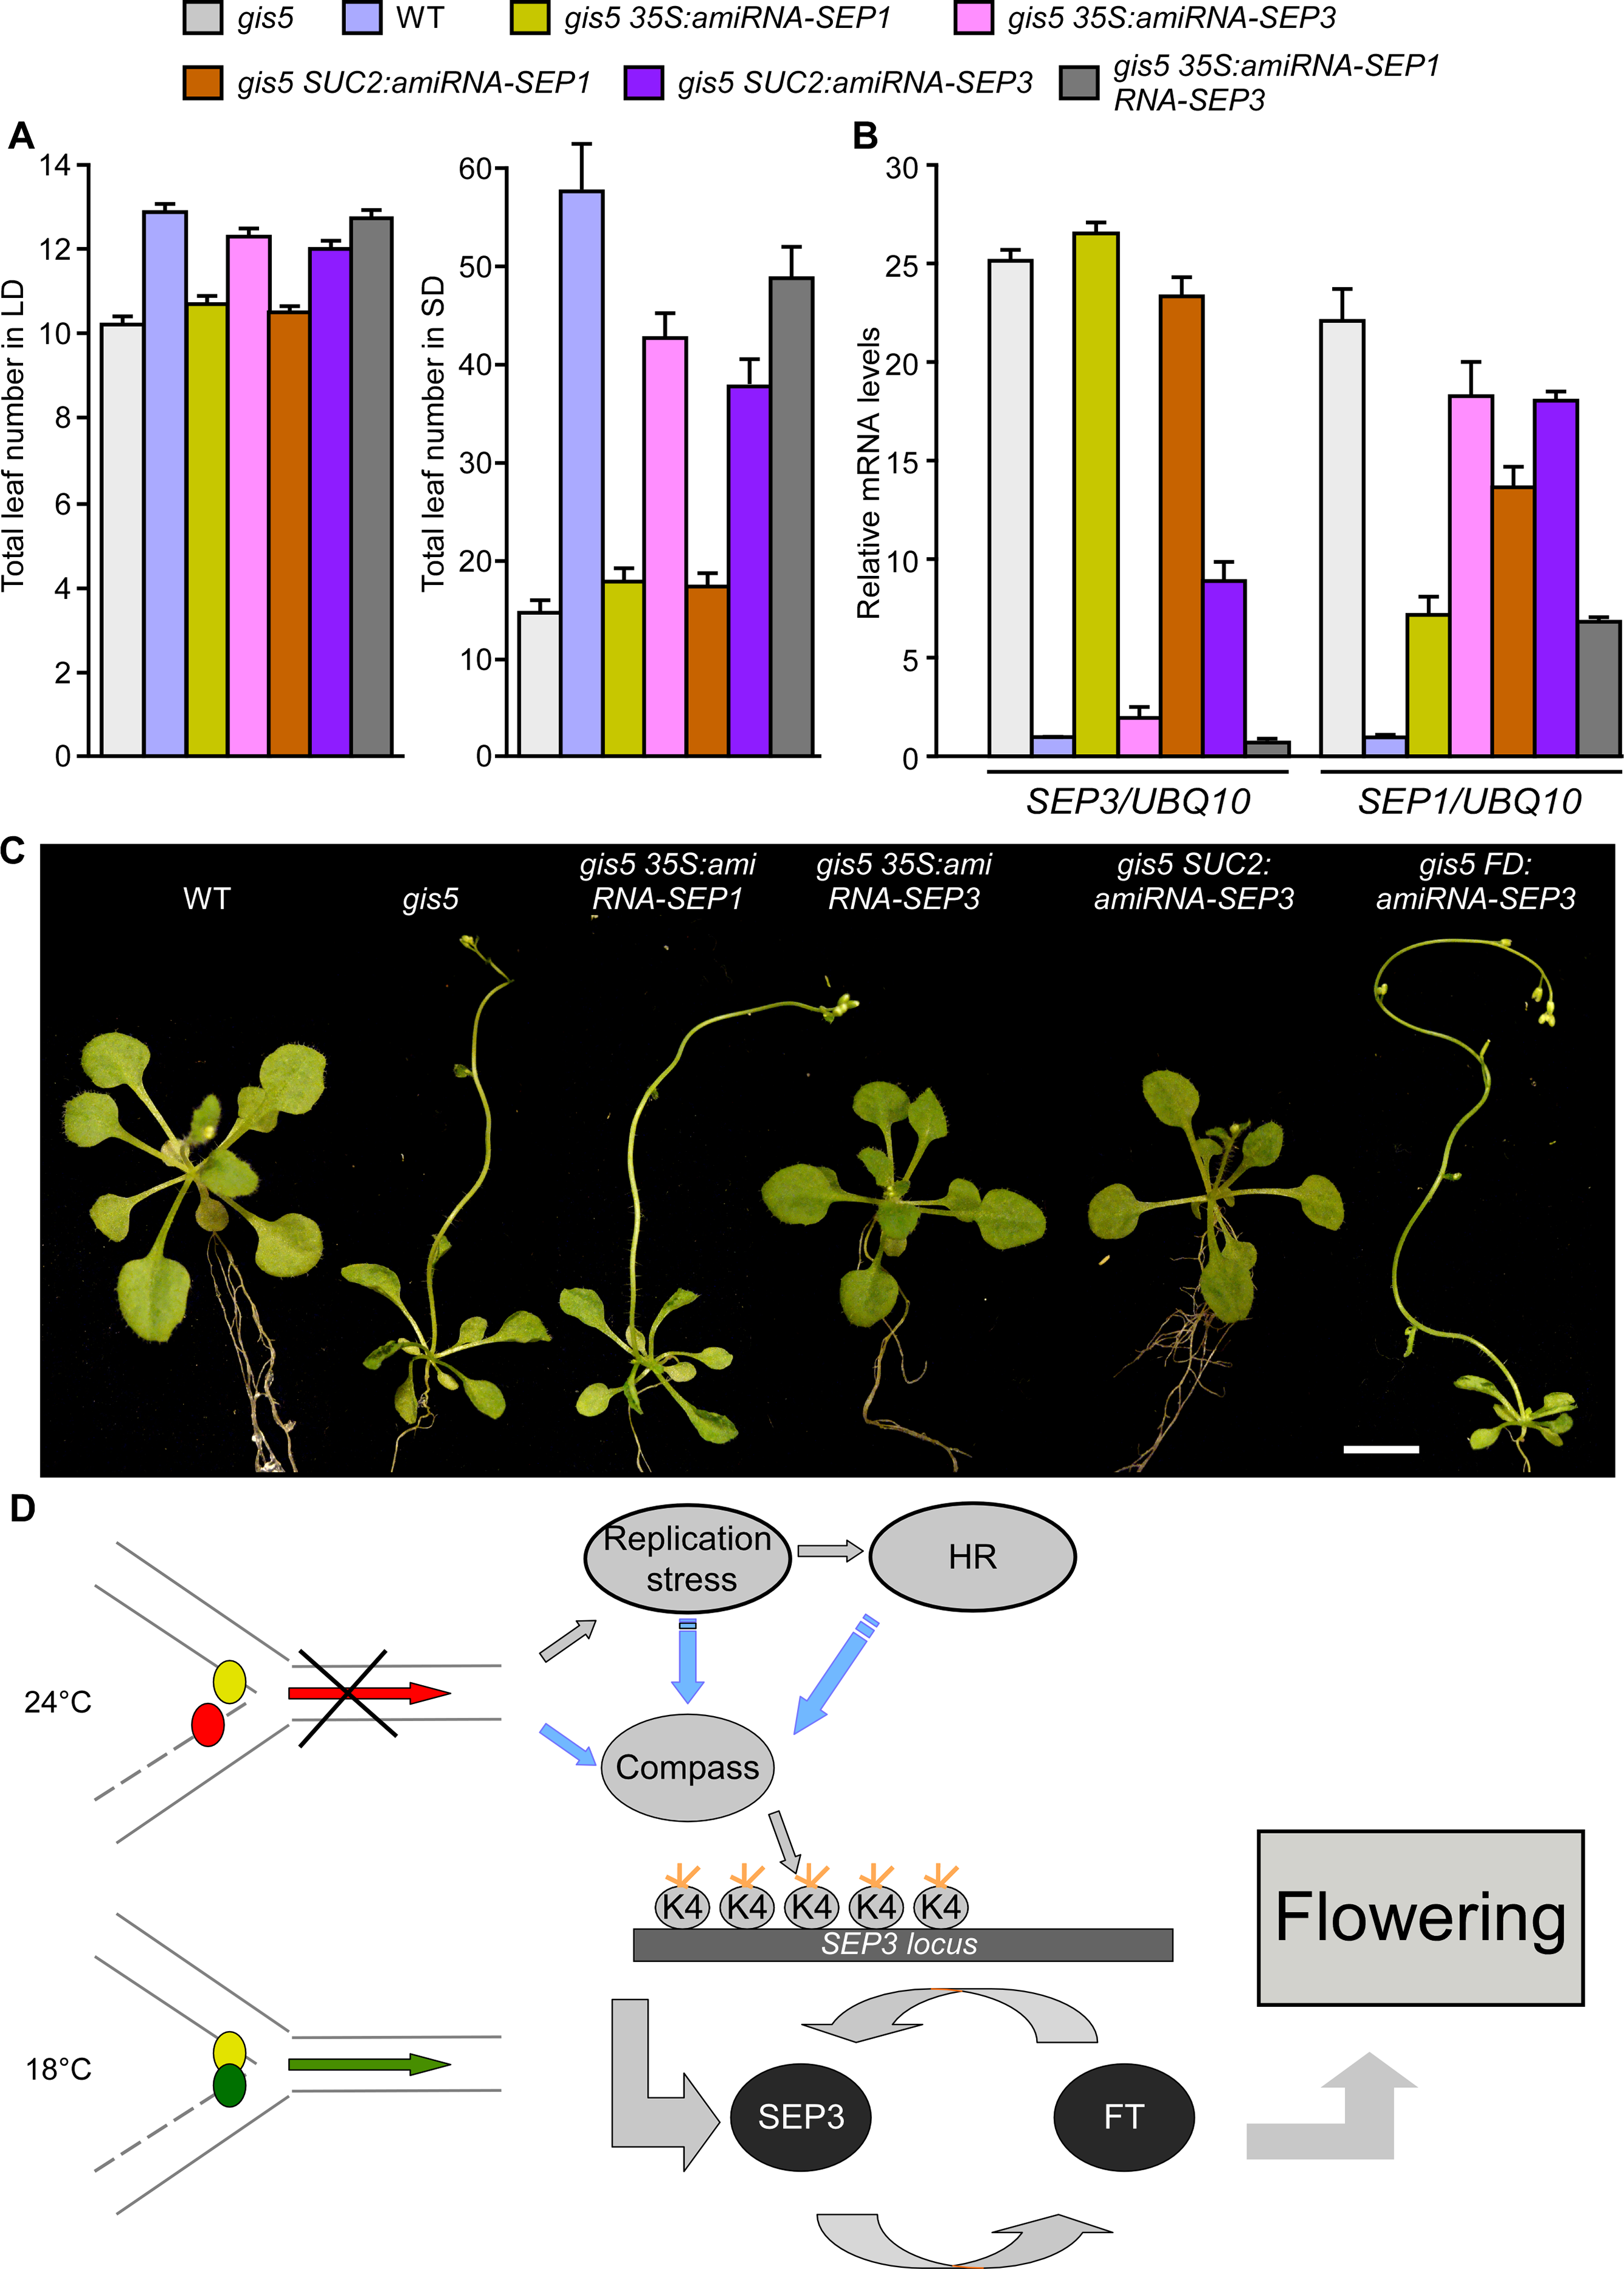 High levels of <i>SEP3</i> expression are required for <i>gis5</i> early flowering and leaf phenotype.